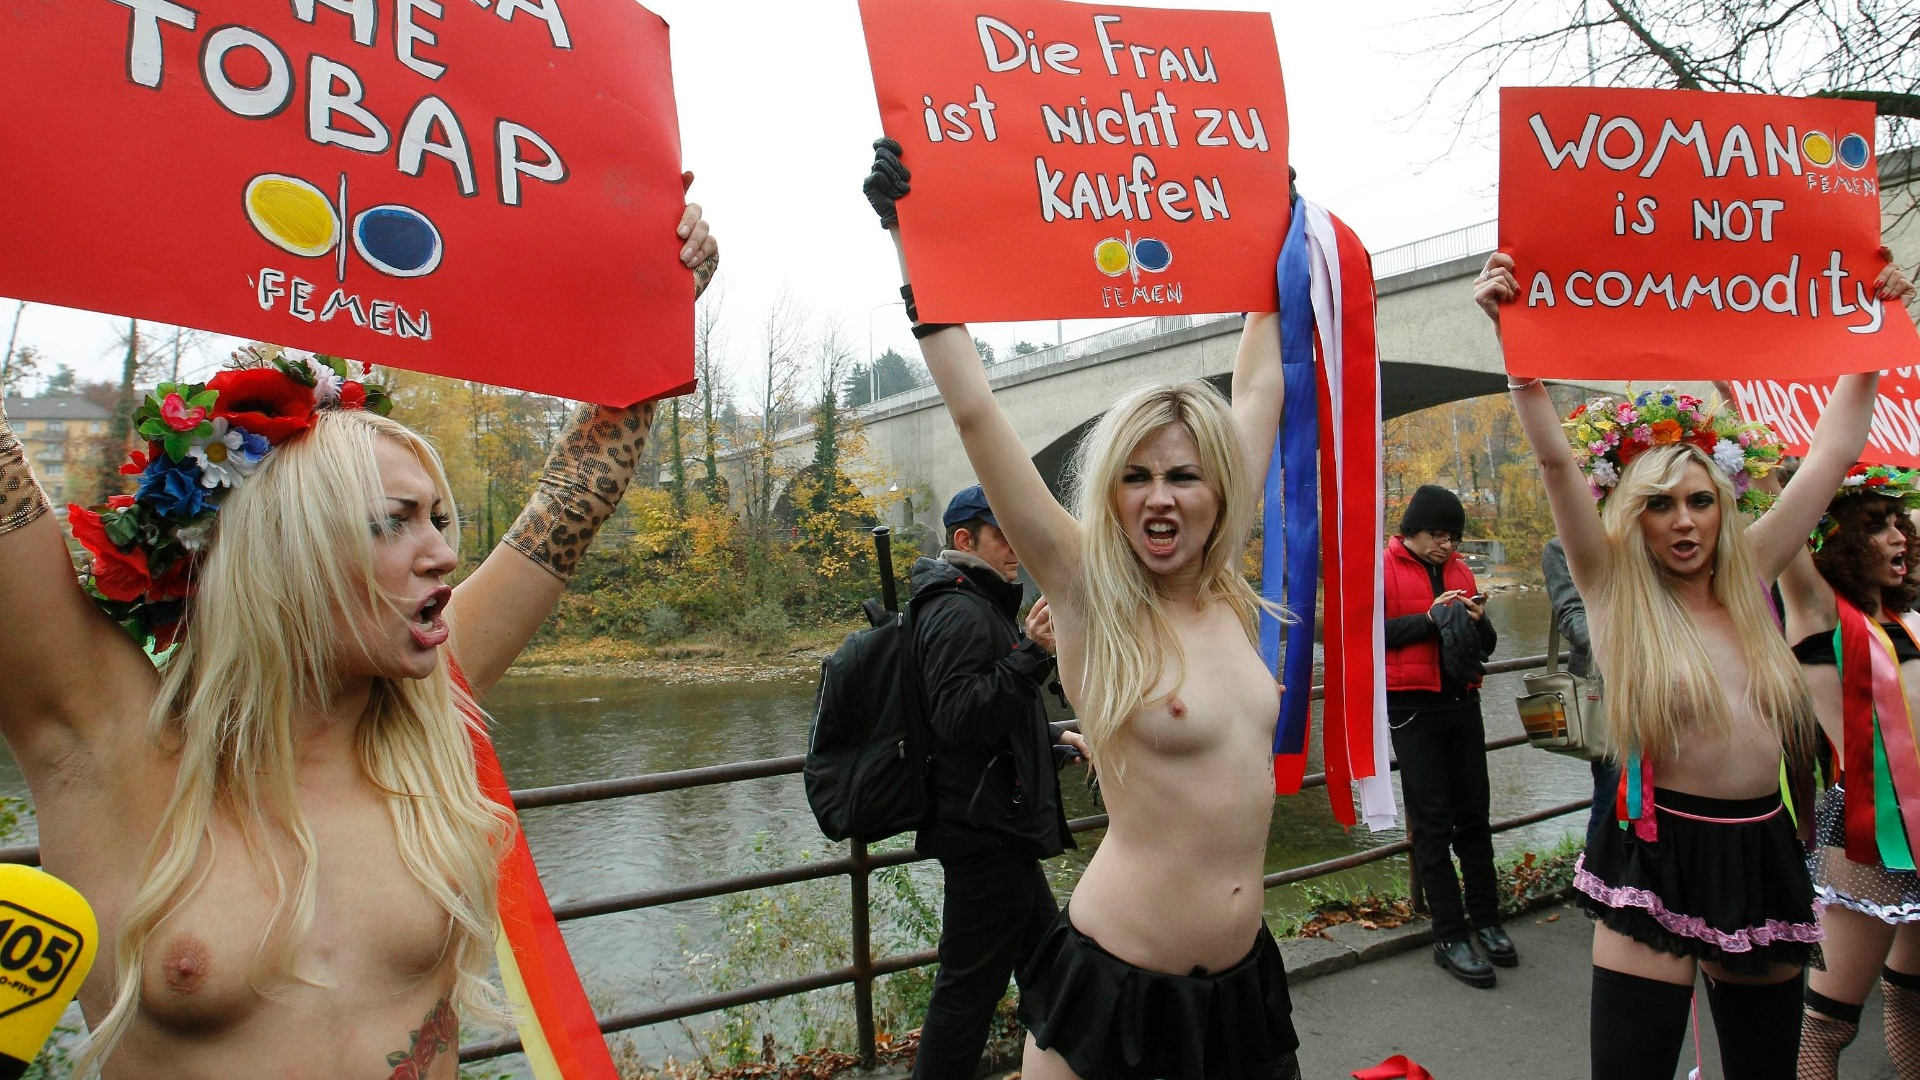 Ativistas ucranianas do grupo conhecido como Femen protestam semi nuas em Zurique, na Sua, contra a discriminao da mulher 